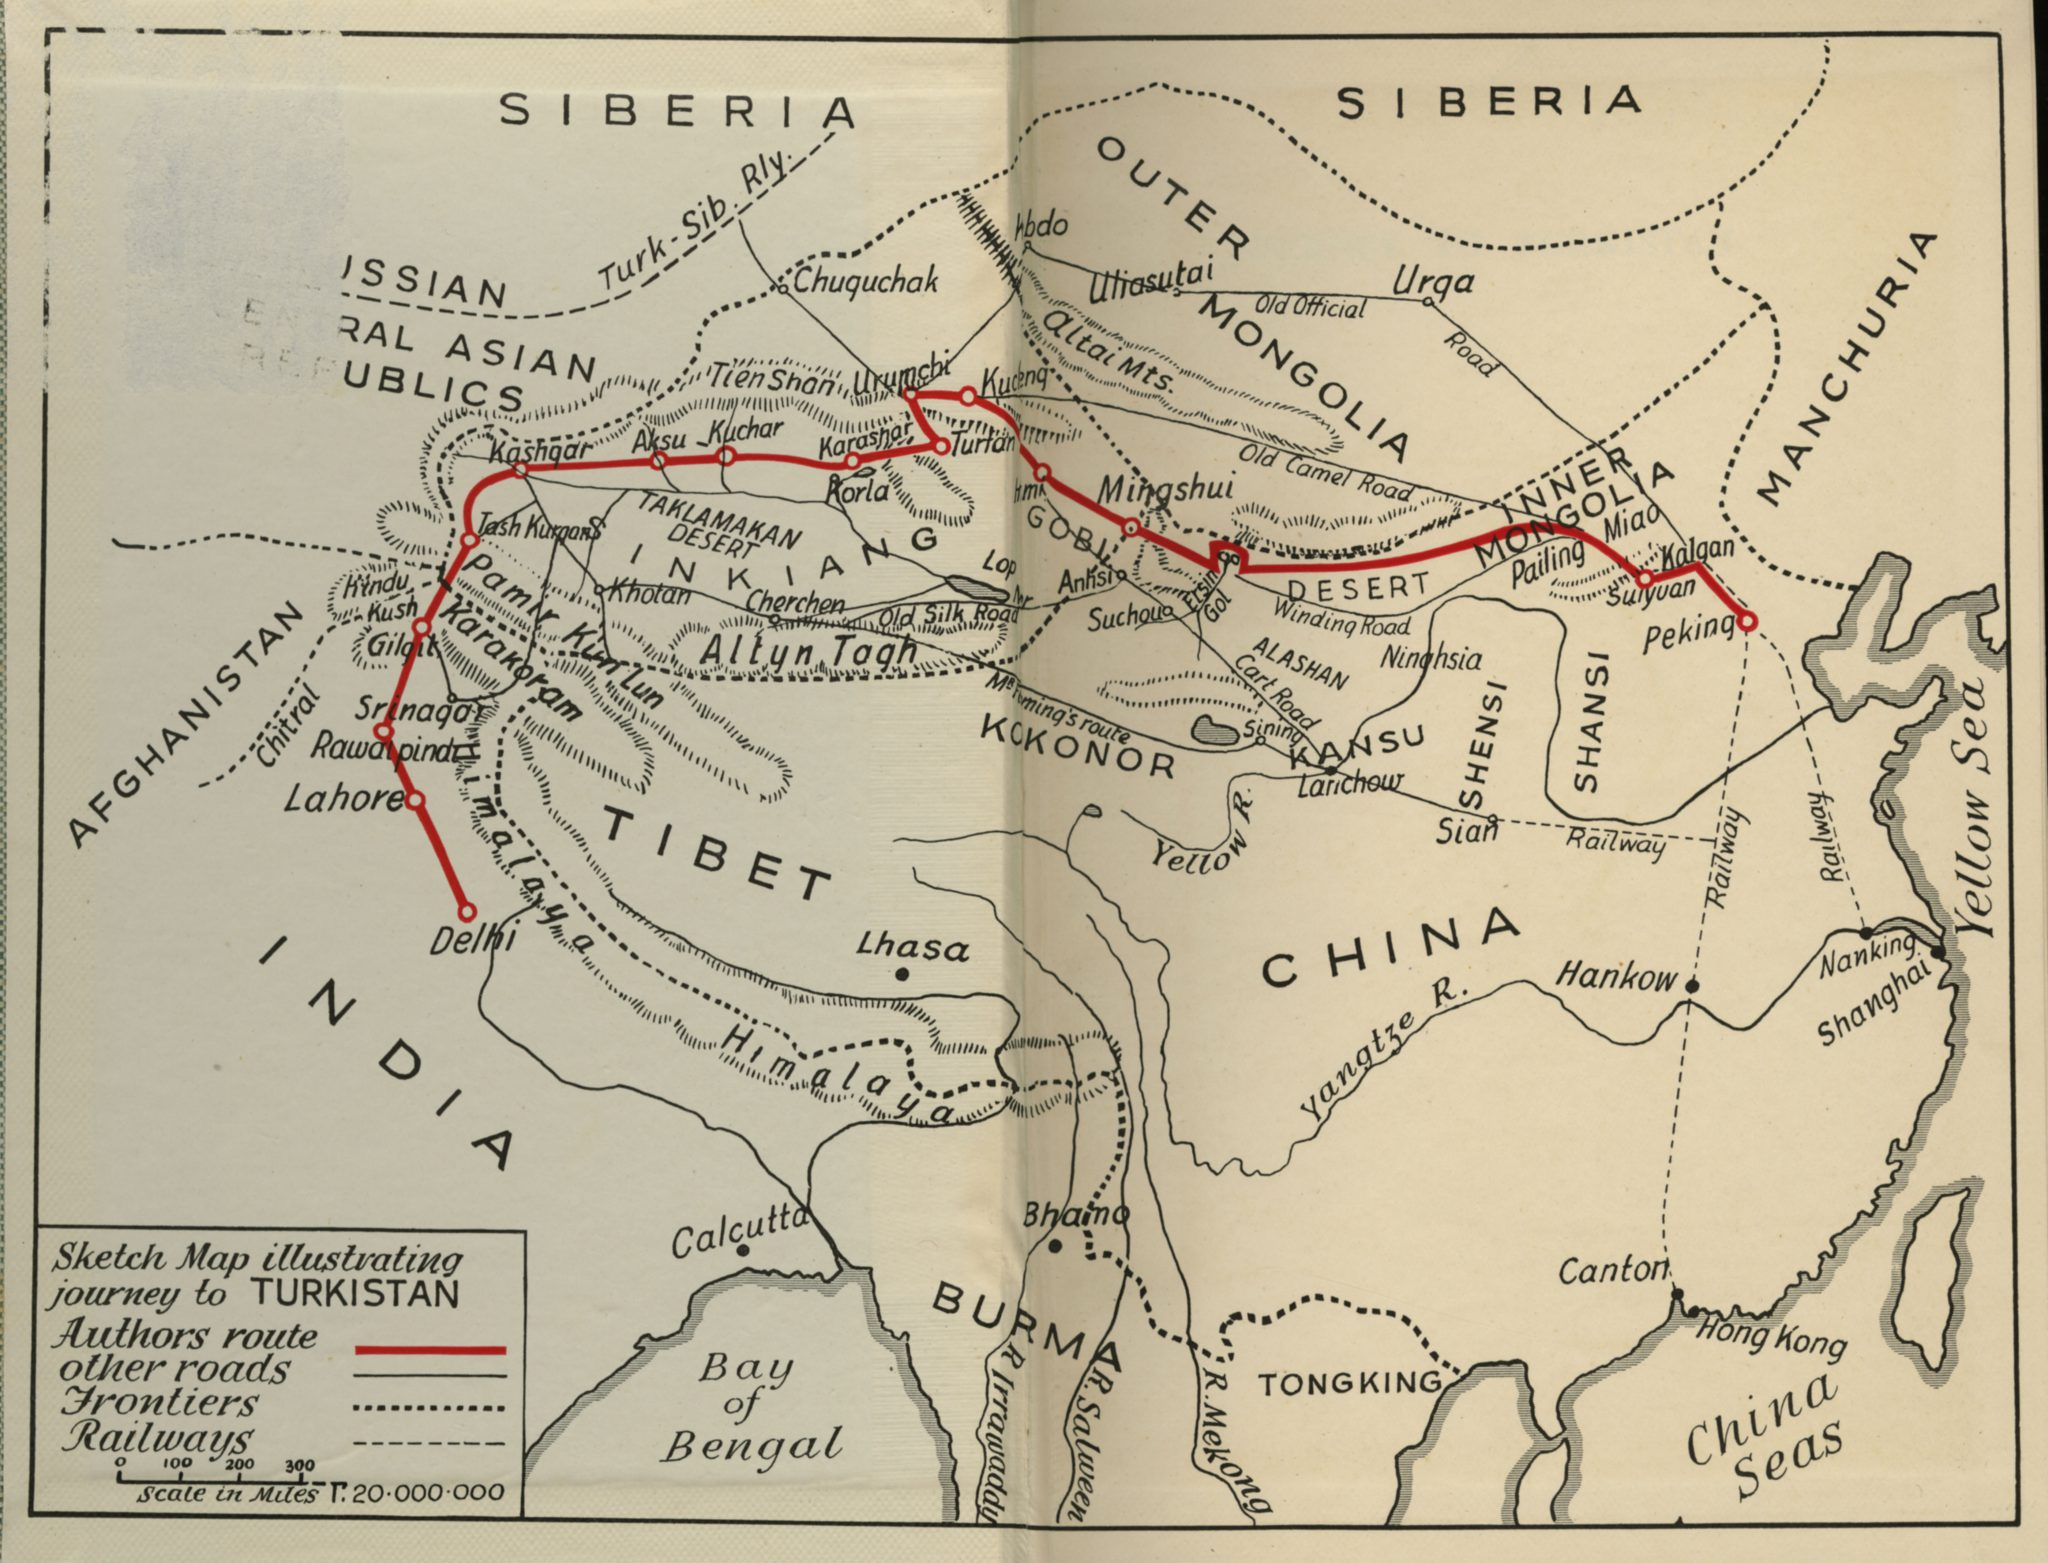 Sketch map illustrating journey to Turkistan 1937